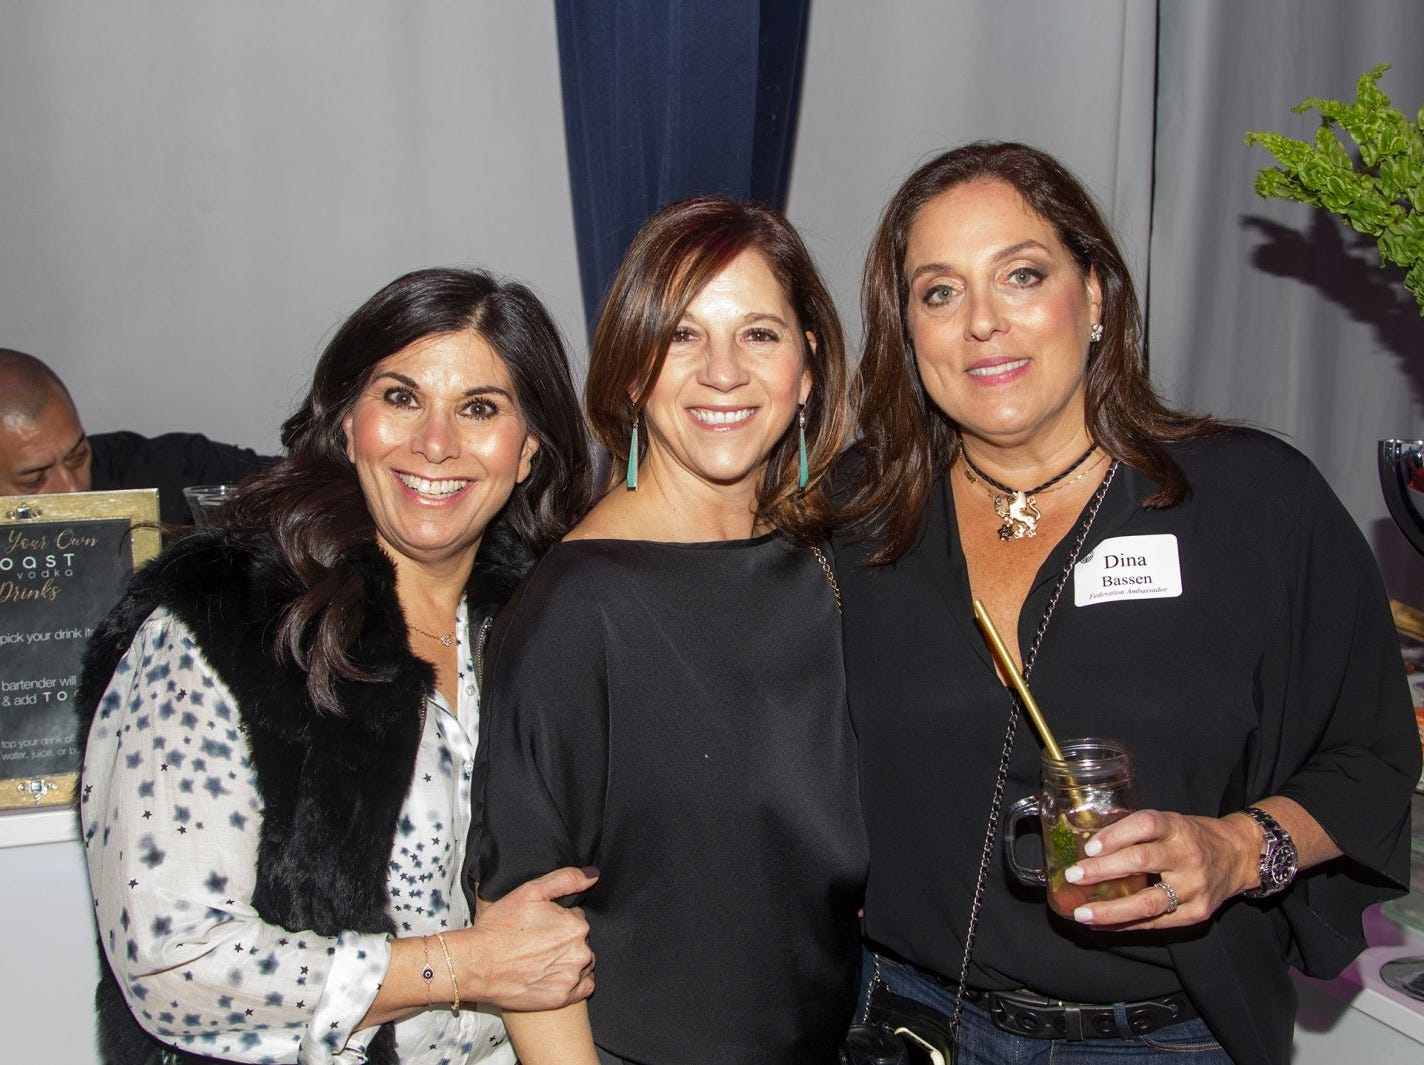 Patricia Tesher, Donna, Dina Bassen. Jewish Federation of Northern New Jersey held its first Girl's Night Out dance party at Space in Englewood. 01/24/2019